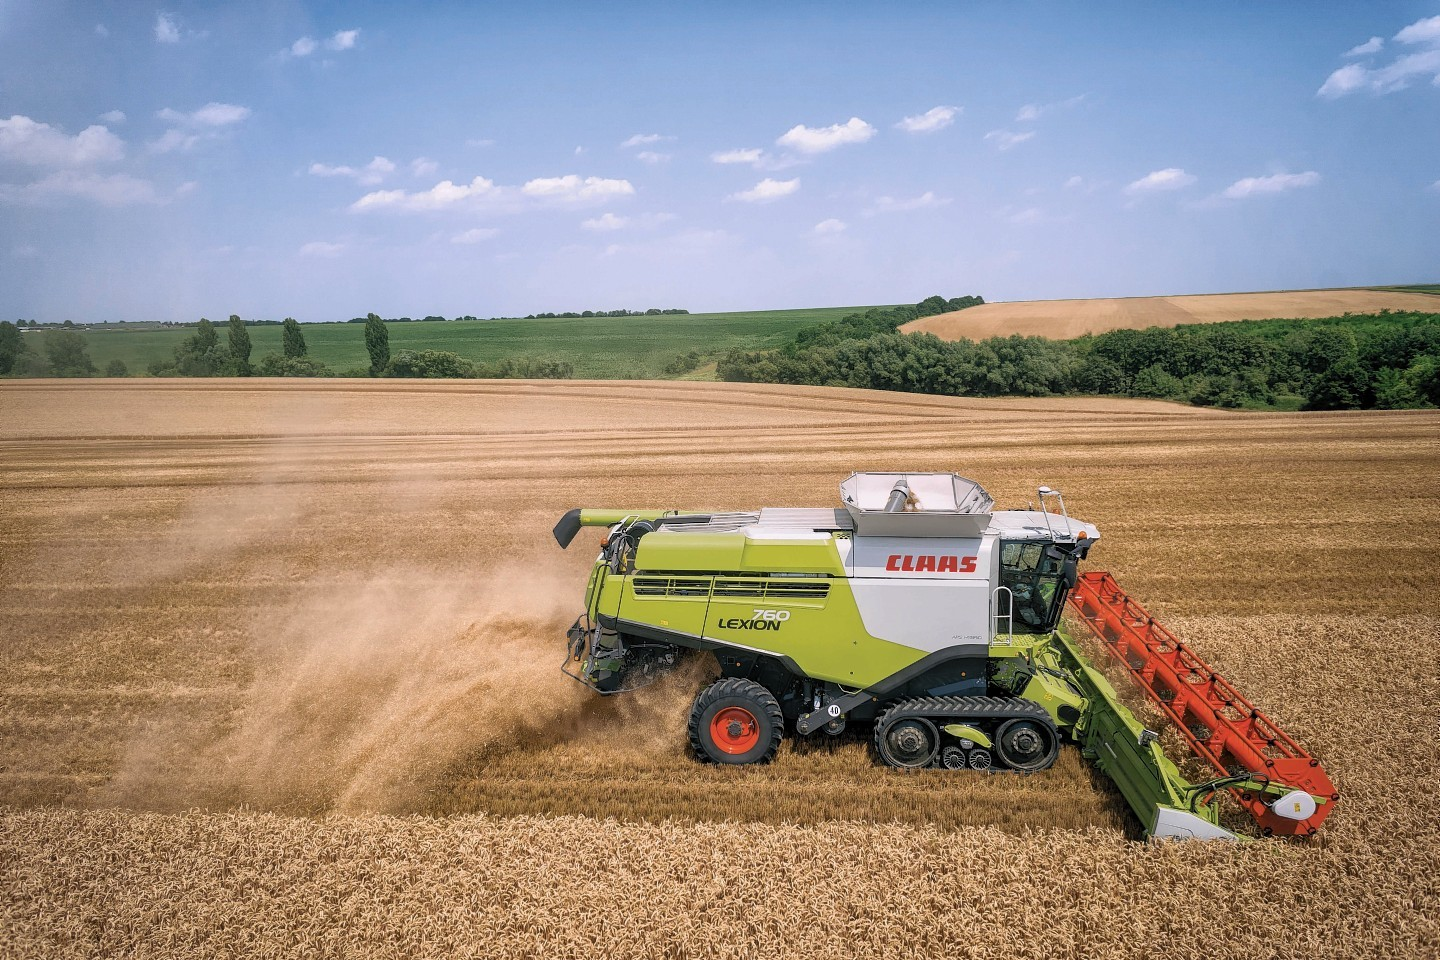 The Claas Lexion 700 in action